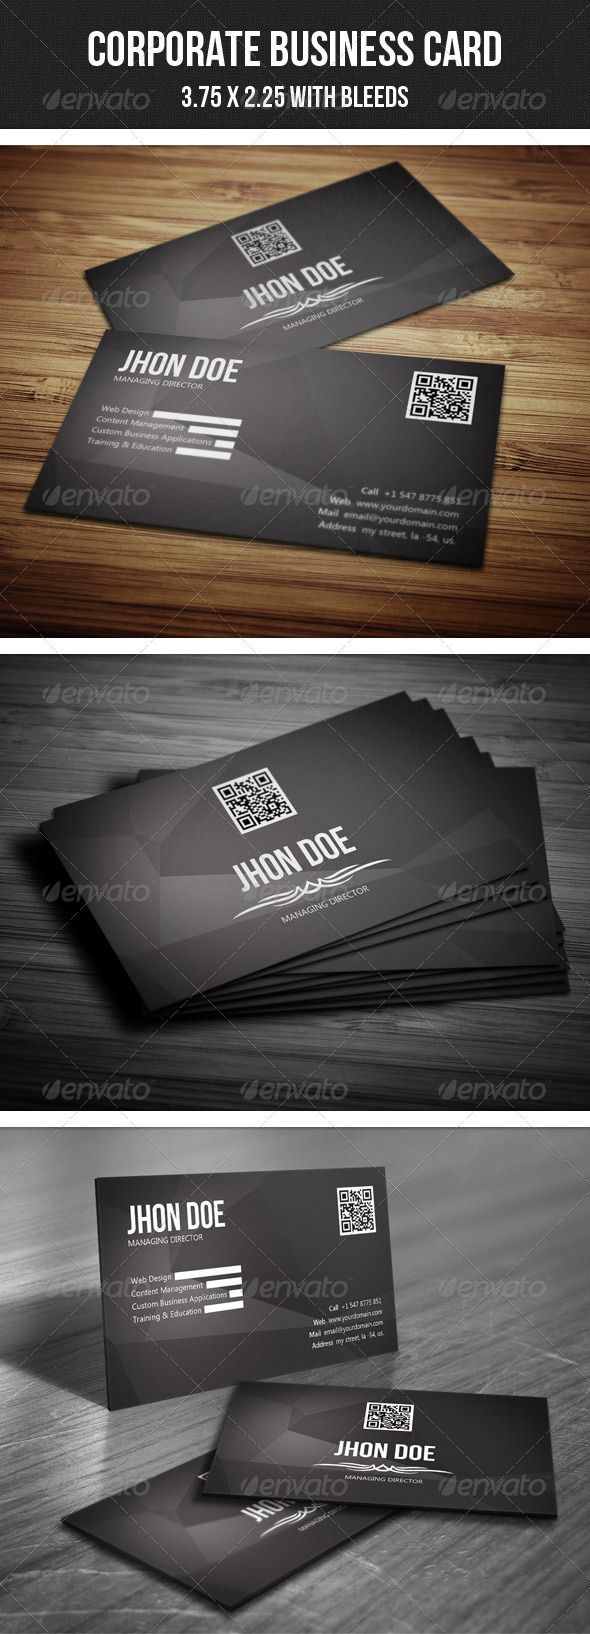 82 best Print Templates images on Pinterest | Fonts, Come in and ...